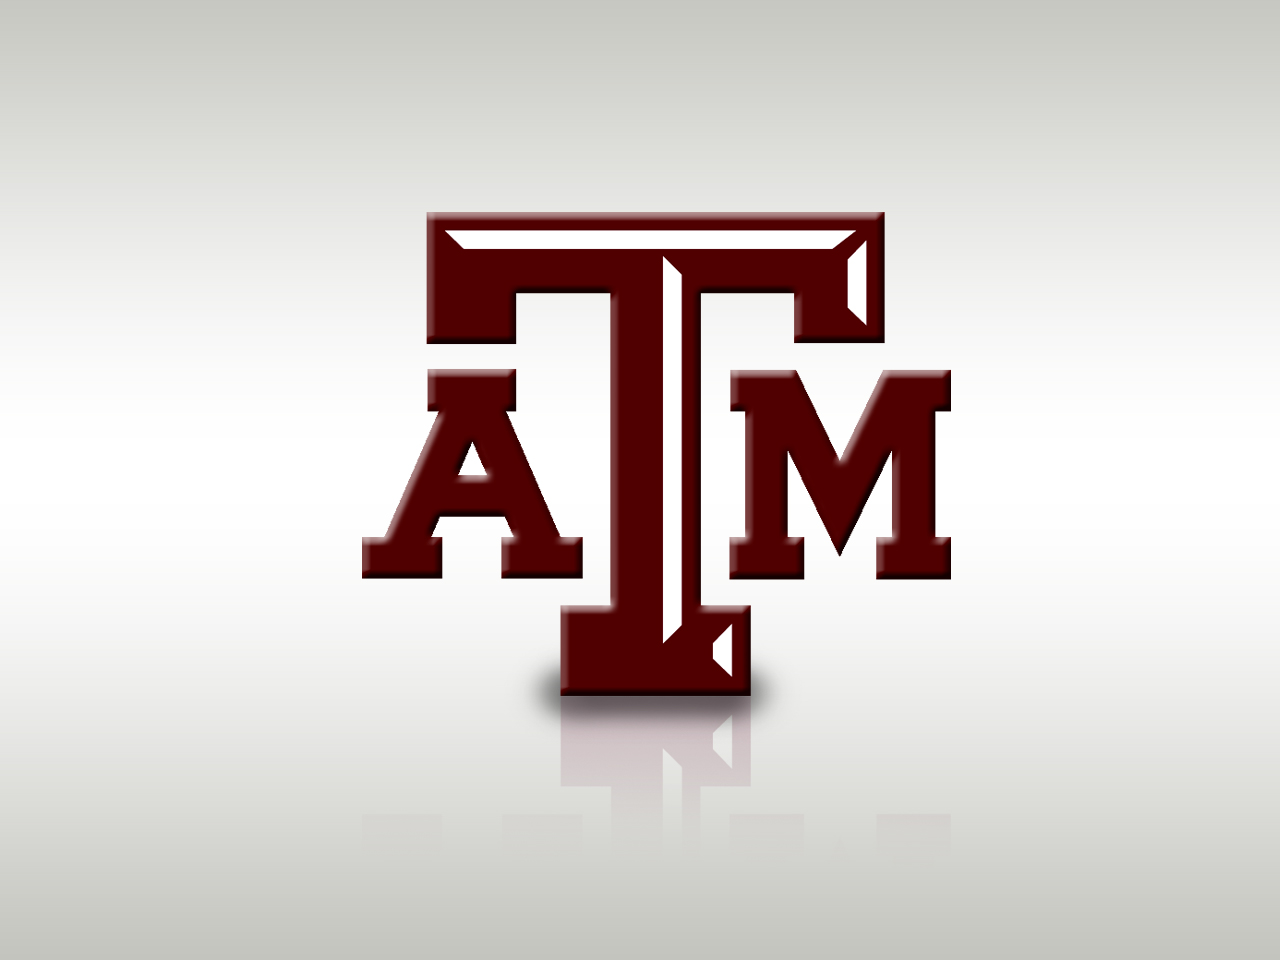 Texas AM Wallpapers Browser Themes More for Aggie Fans 1280x960